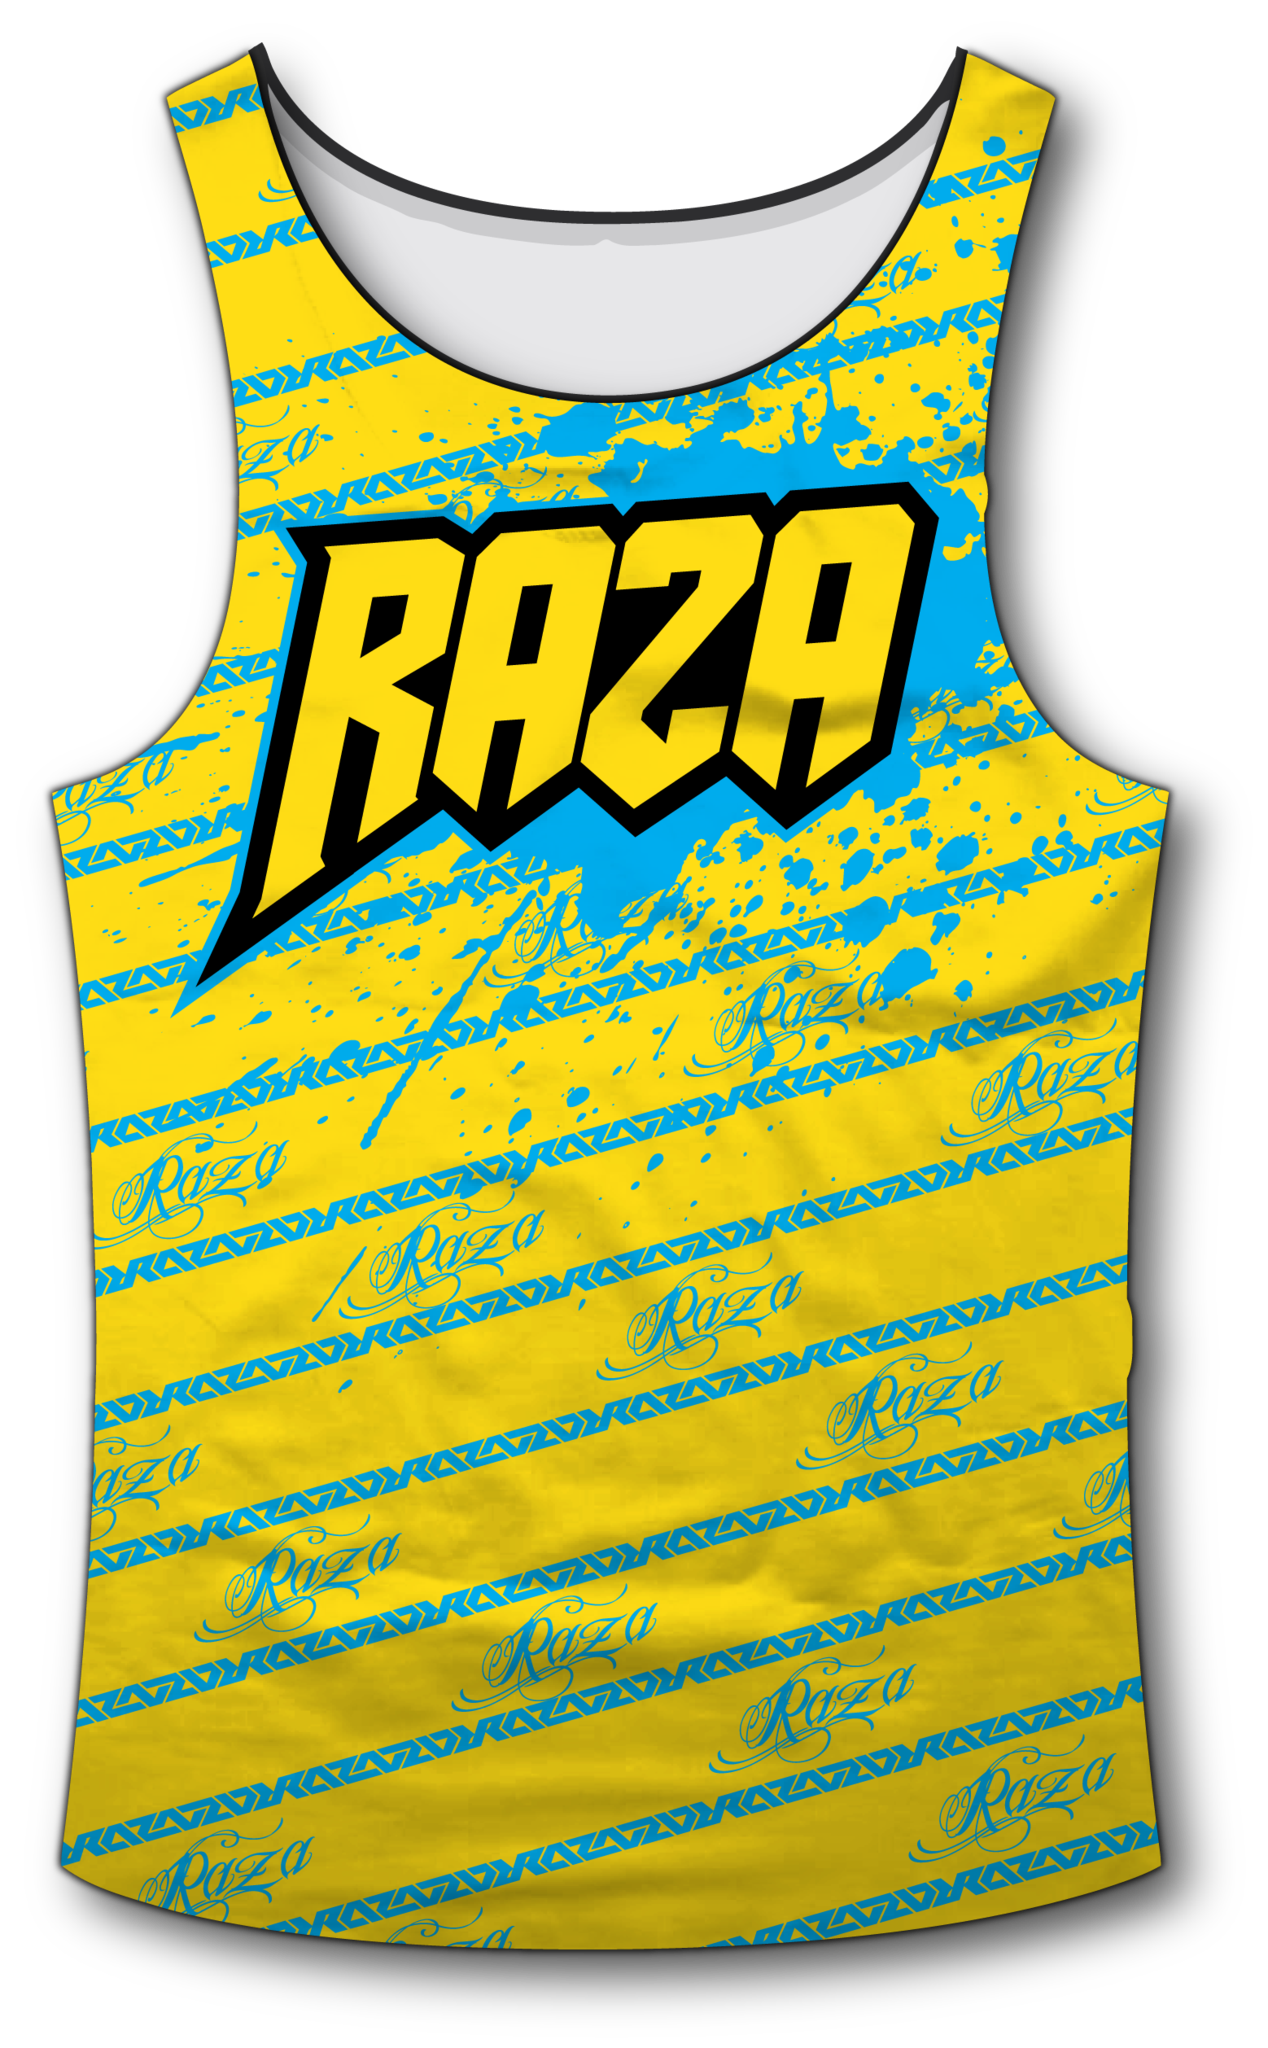 Candy YB Tank Top - RazaLife - Tech Tank Top - RazaLife - RazaLife - paintball - custom - jerseys - sports - uniforms - woodsball - softball - baseball - basketball - soccer